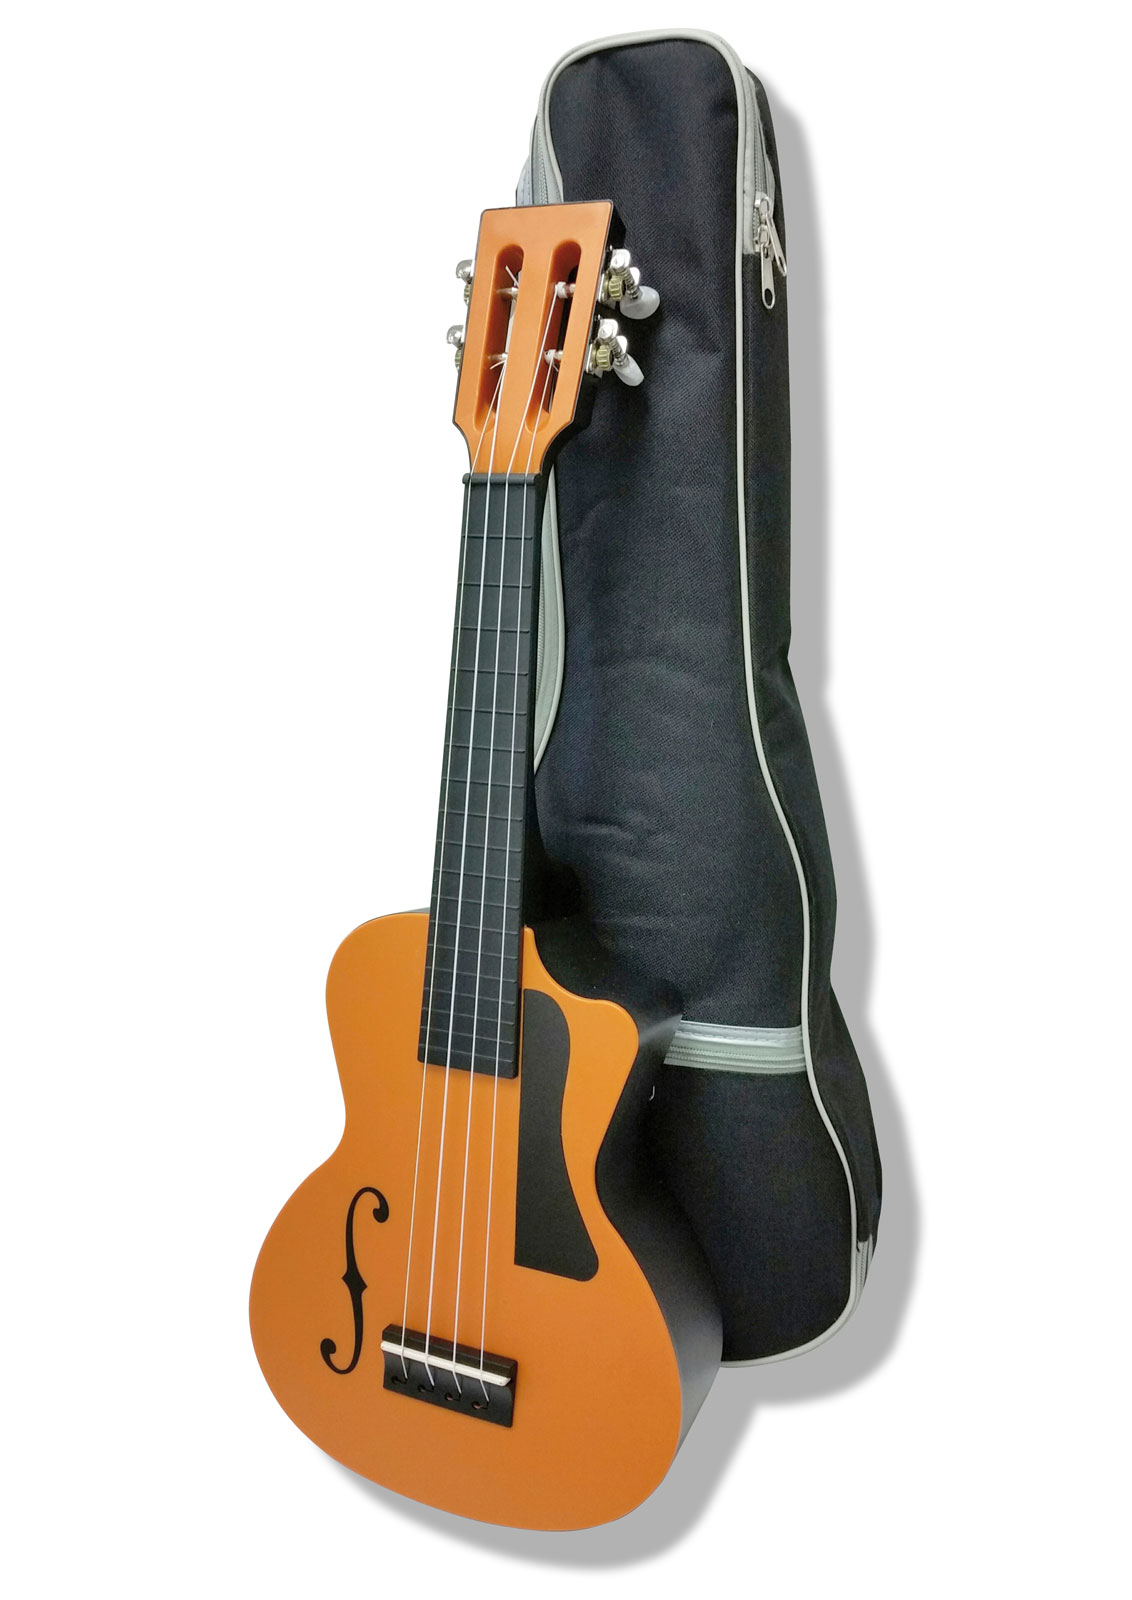 Aqualele aqualele concert orange housse ukulele for Housse ukulele concert